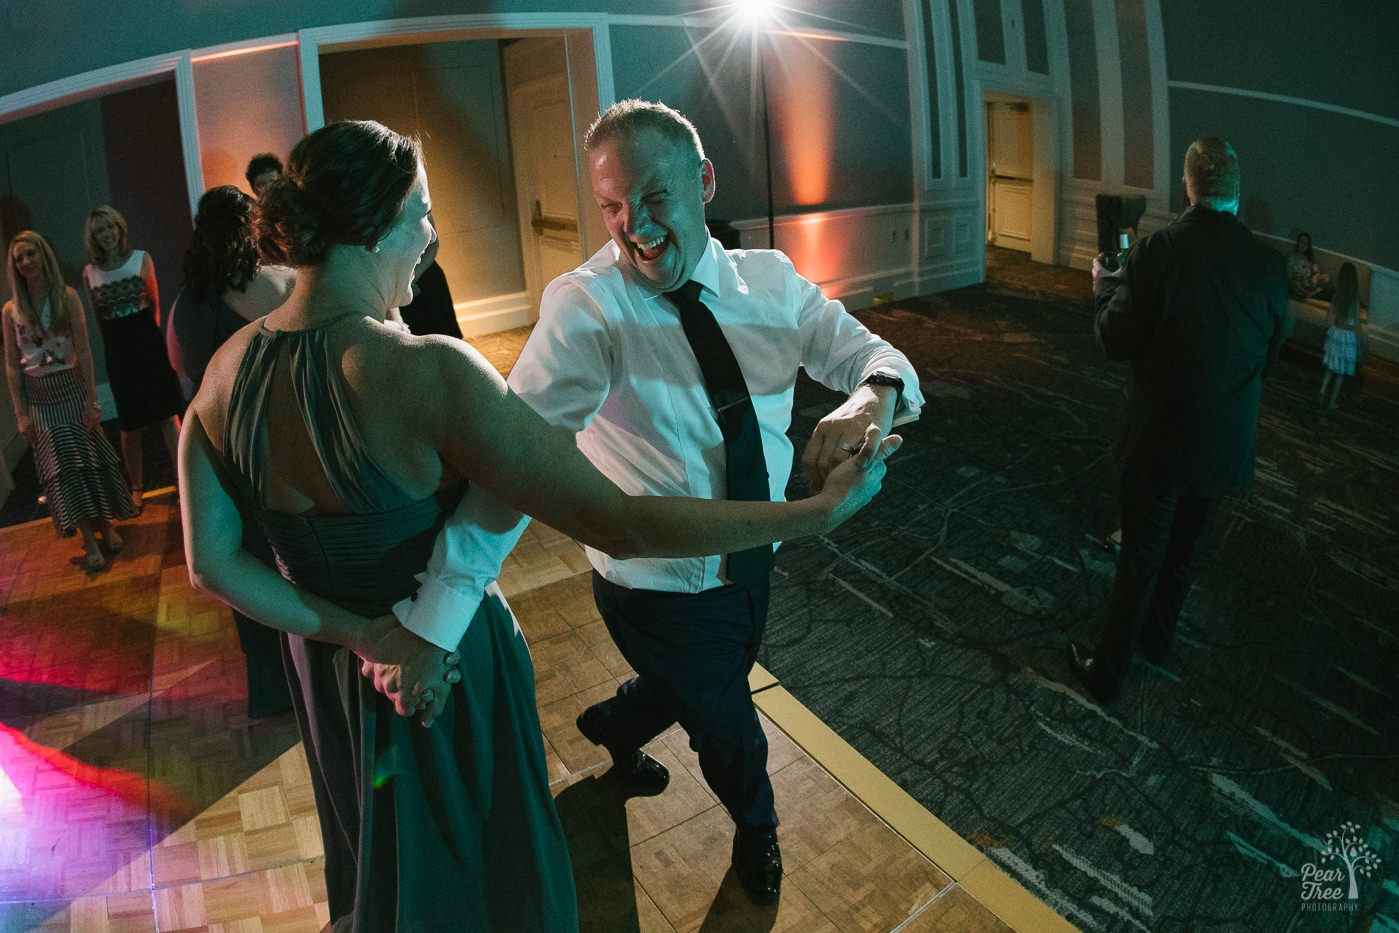 Groom dancing with maid of honor.